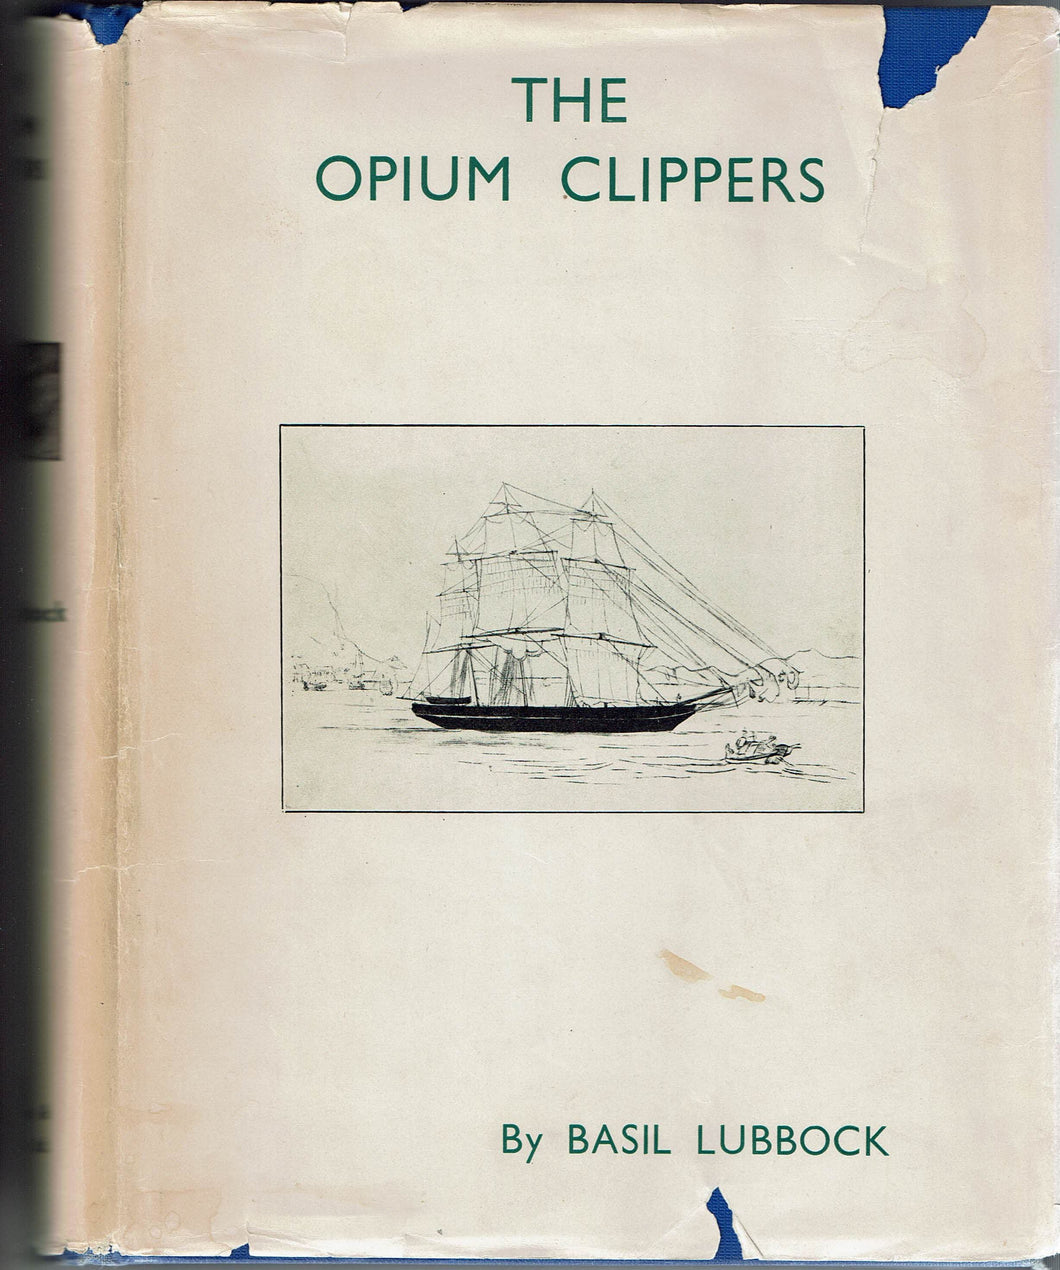 The Opium Clippers by Basil Lubbock